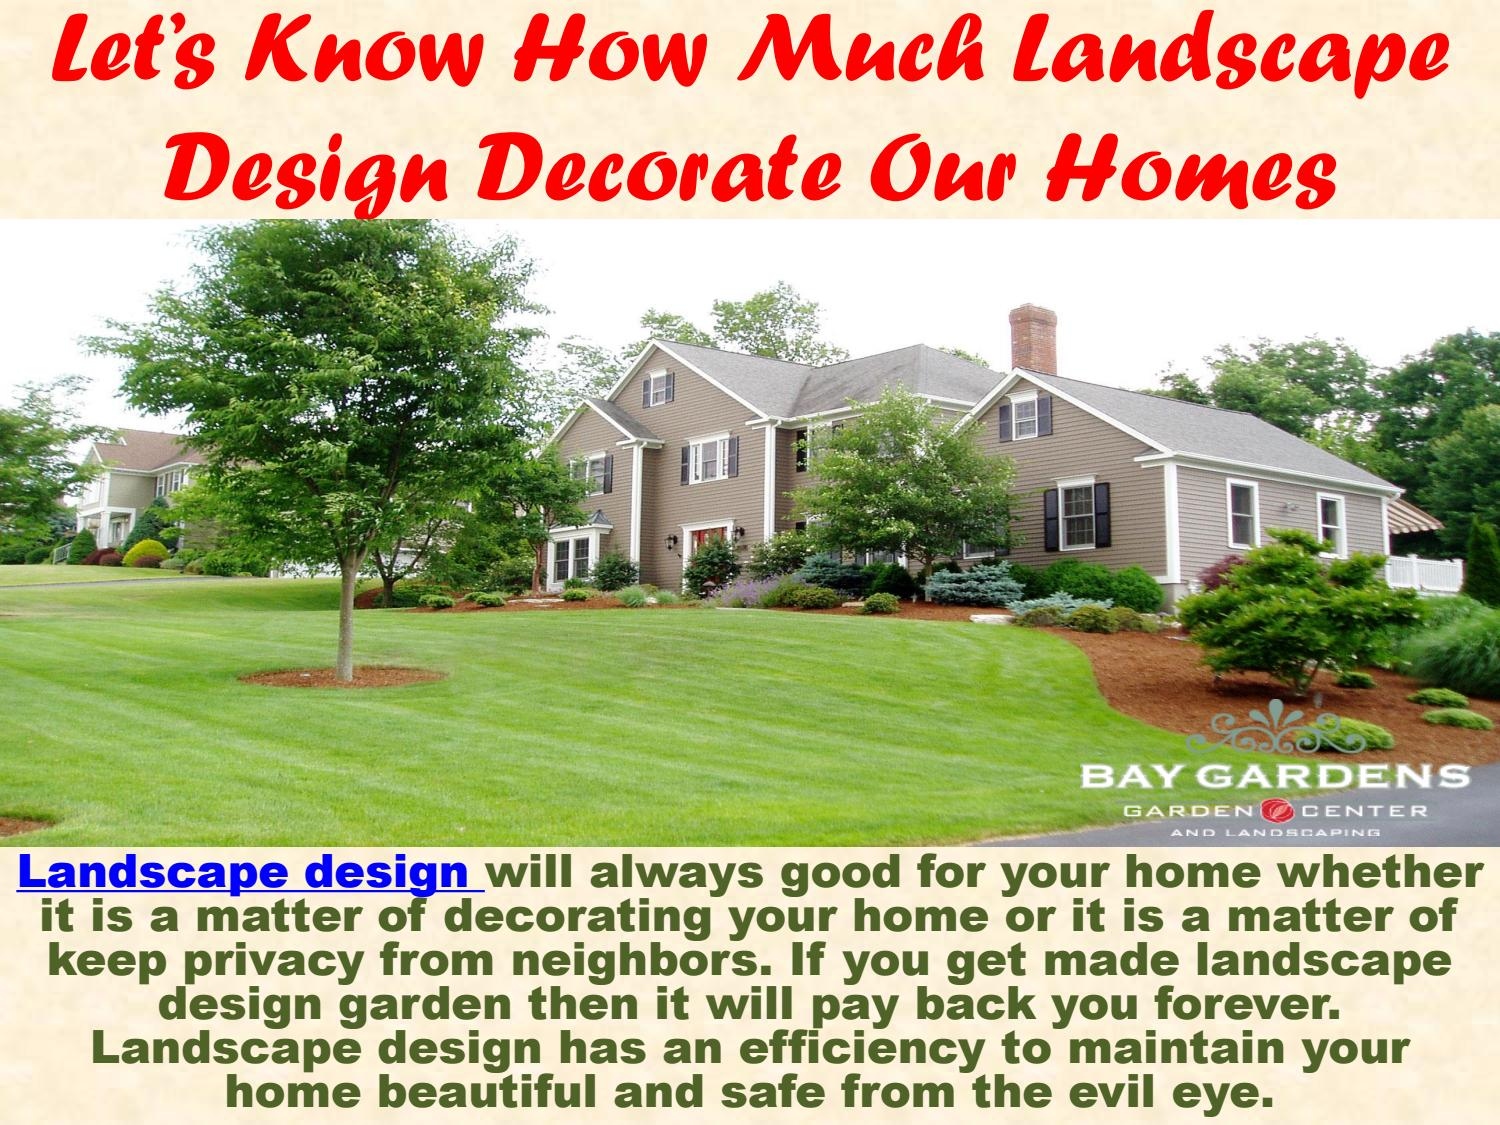 Know About Landscape Design S Benefits To Our Home By Shop Bay Gardens Nursery Trees And Shrubs Issuu